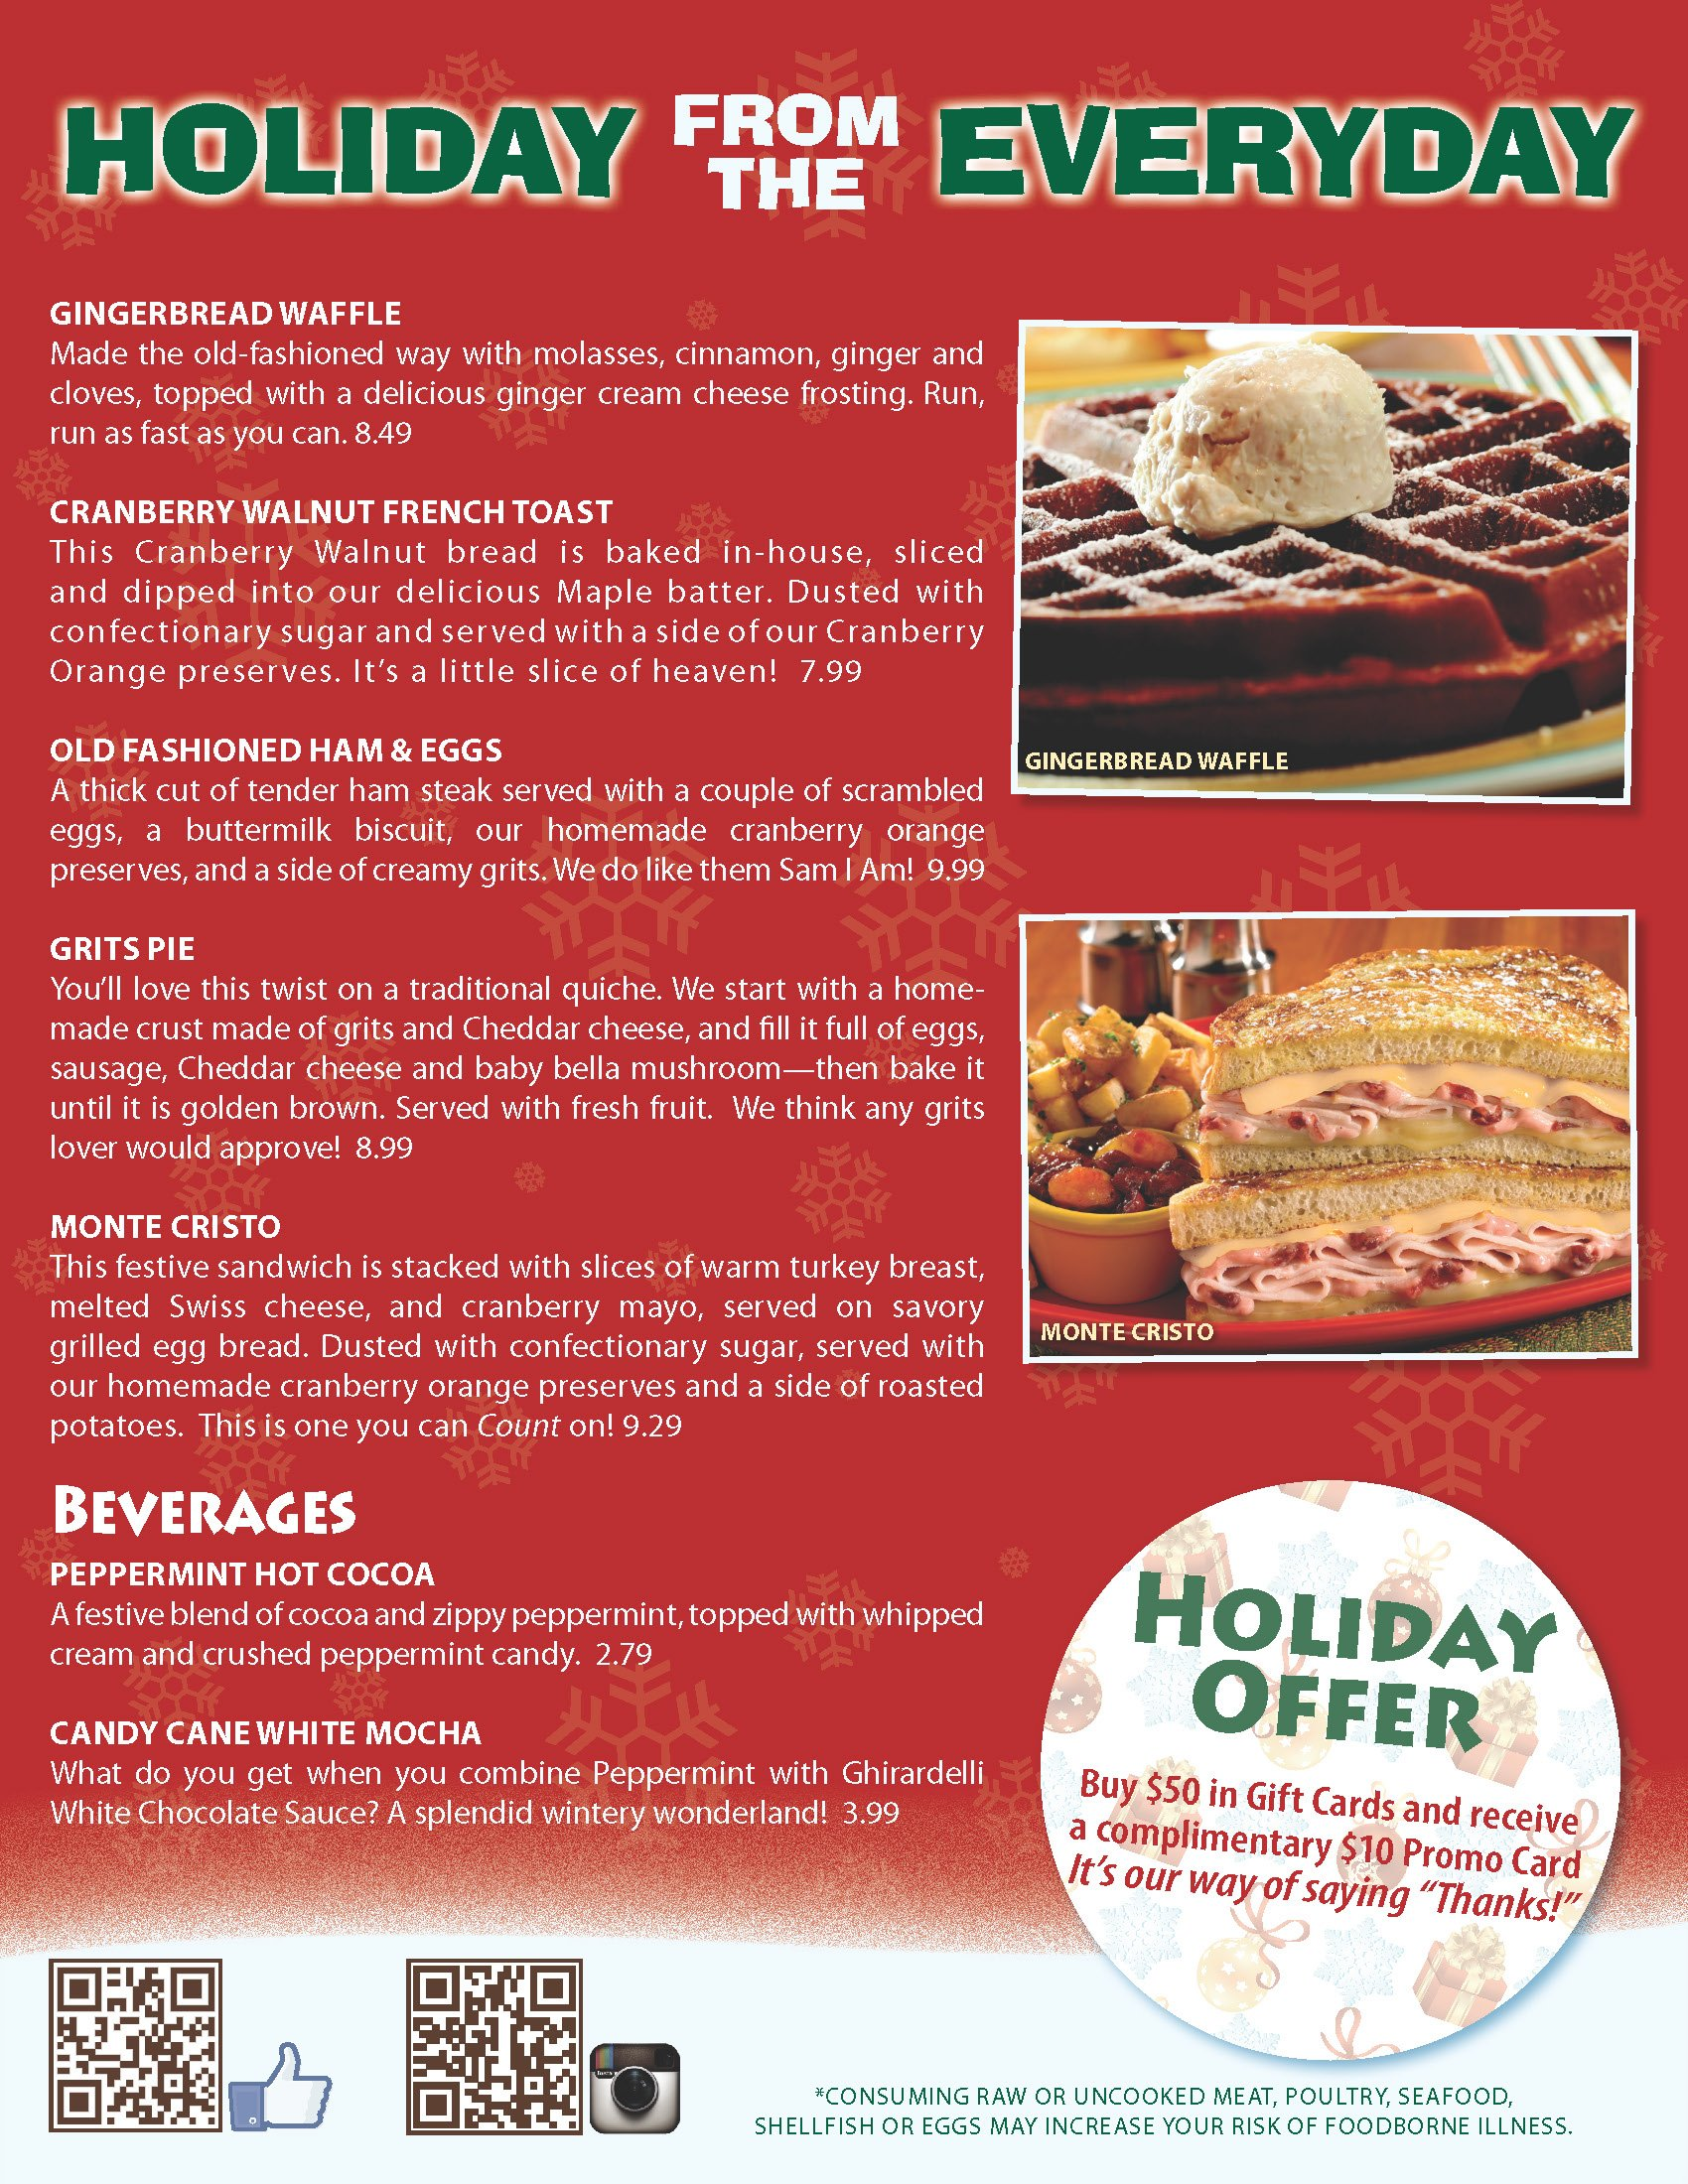 Enjoy a HOLIDAY from the everyday!